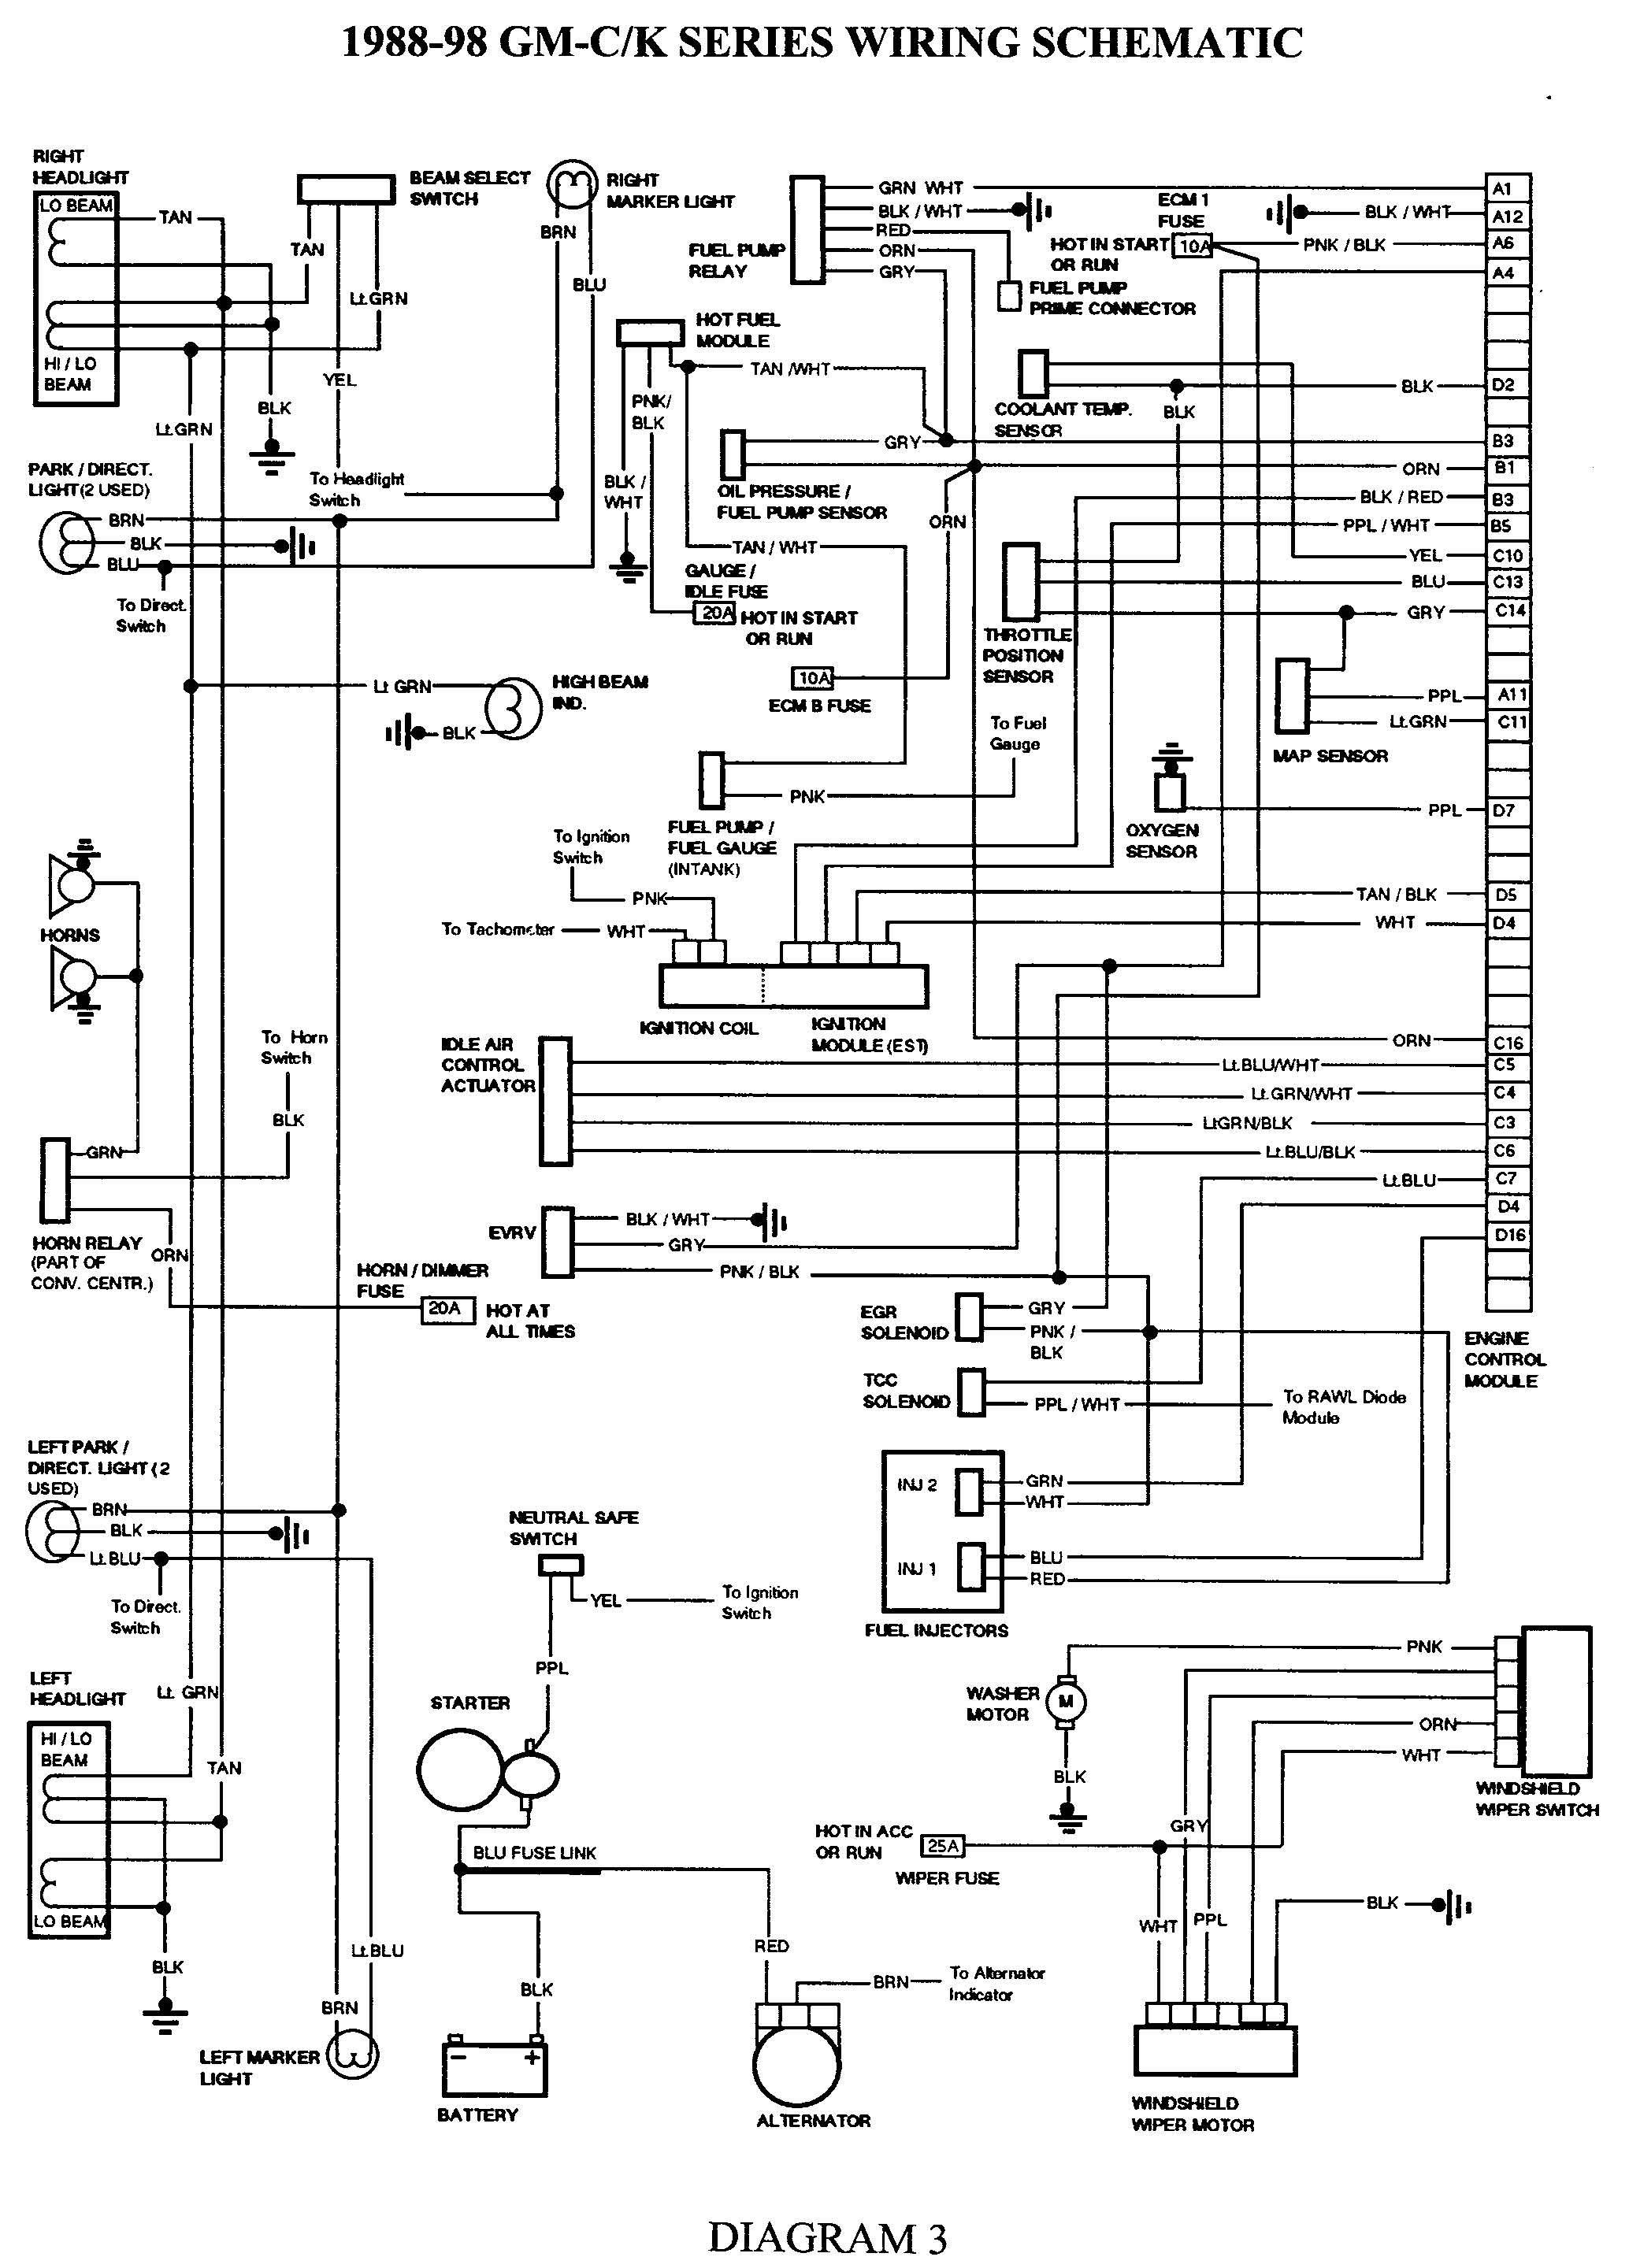 wiring diagram, http://bookingritzcarlton.info/wiring-diagram/ | electrical  diagram, electrical wiring diagram, chevy 1500  pinterest